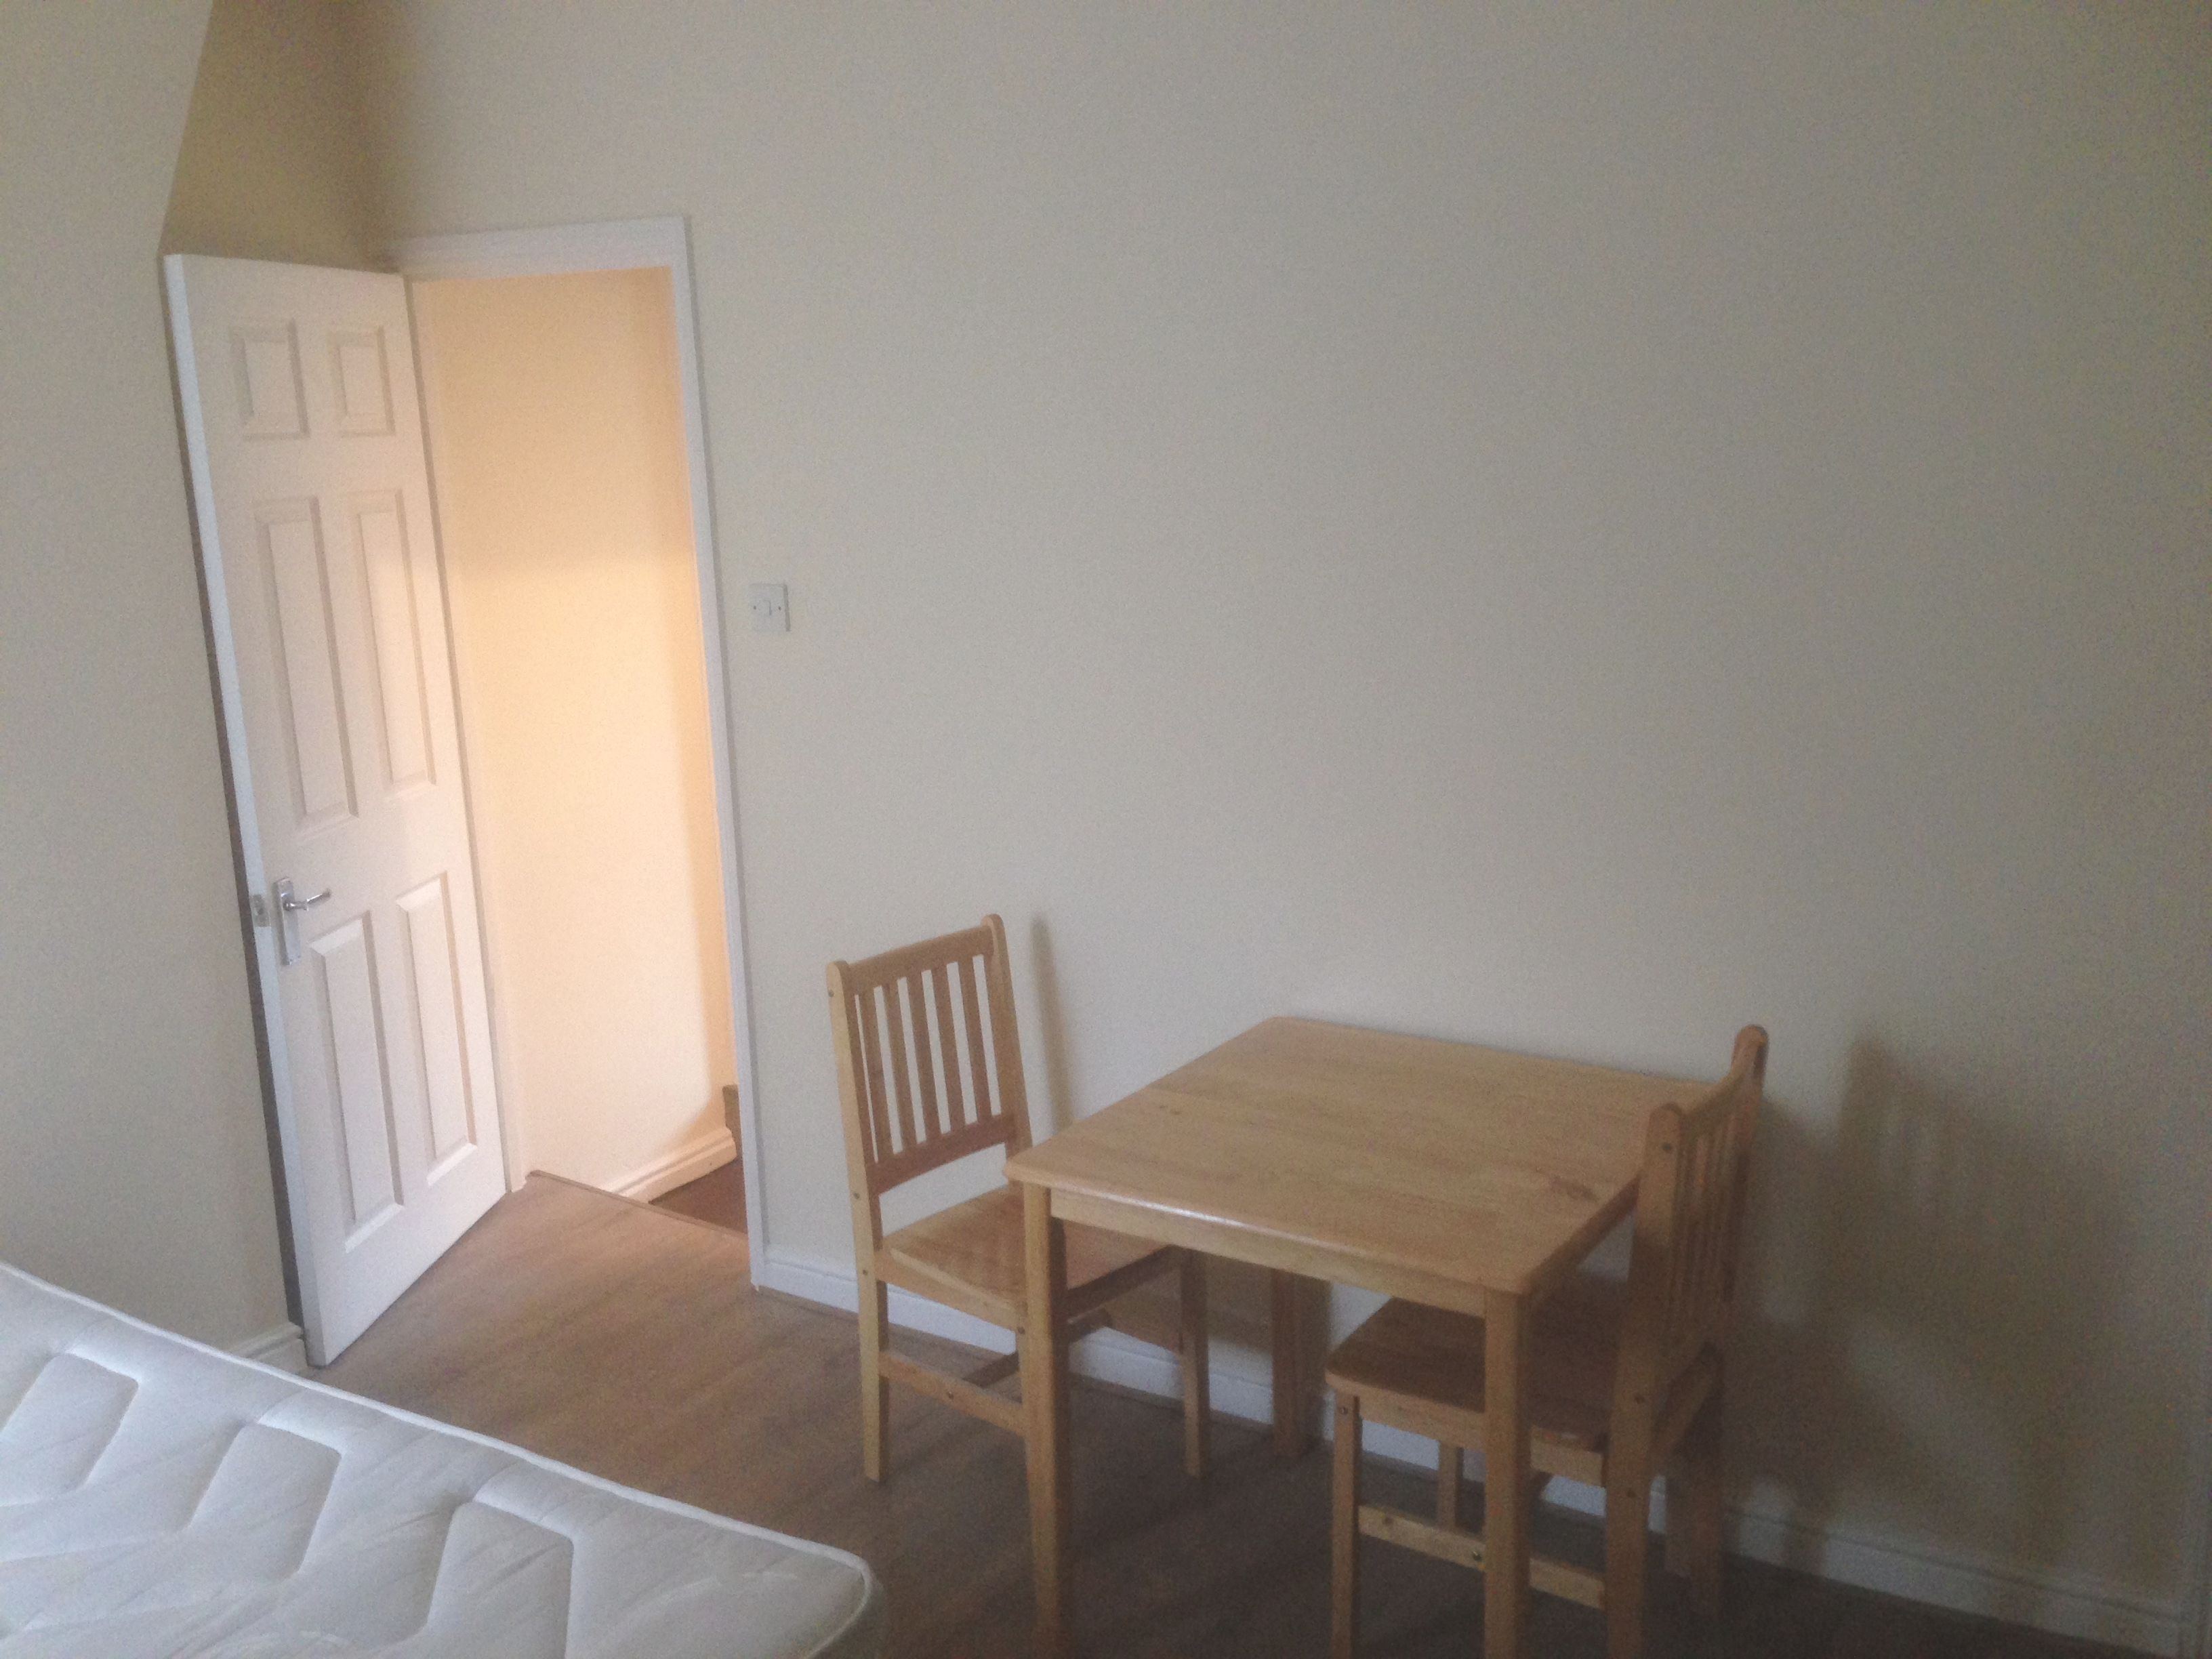 Well located one bedroom flat situated in Tottenham Hale.